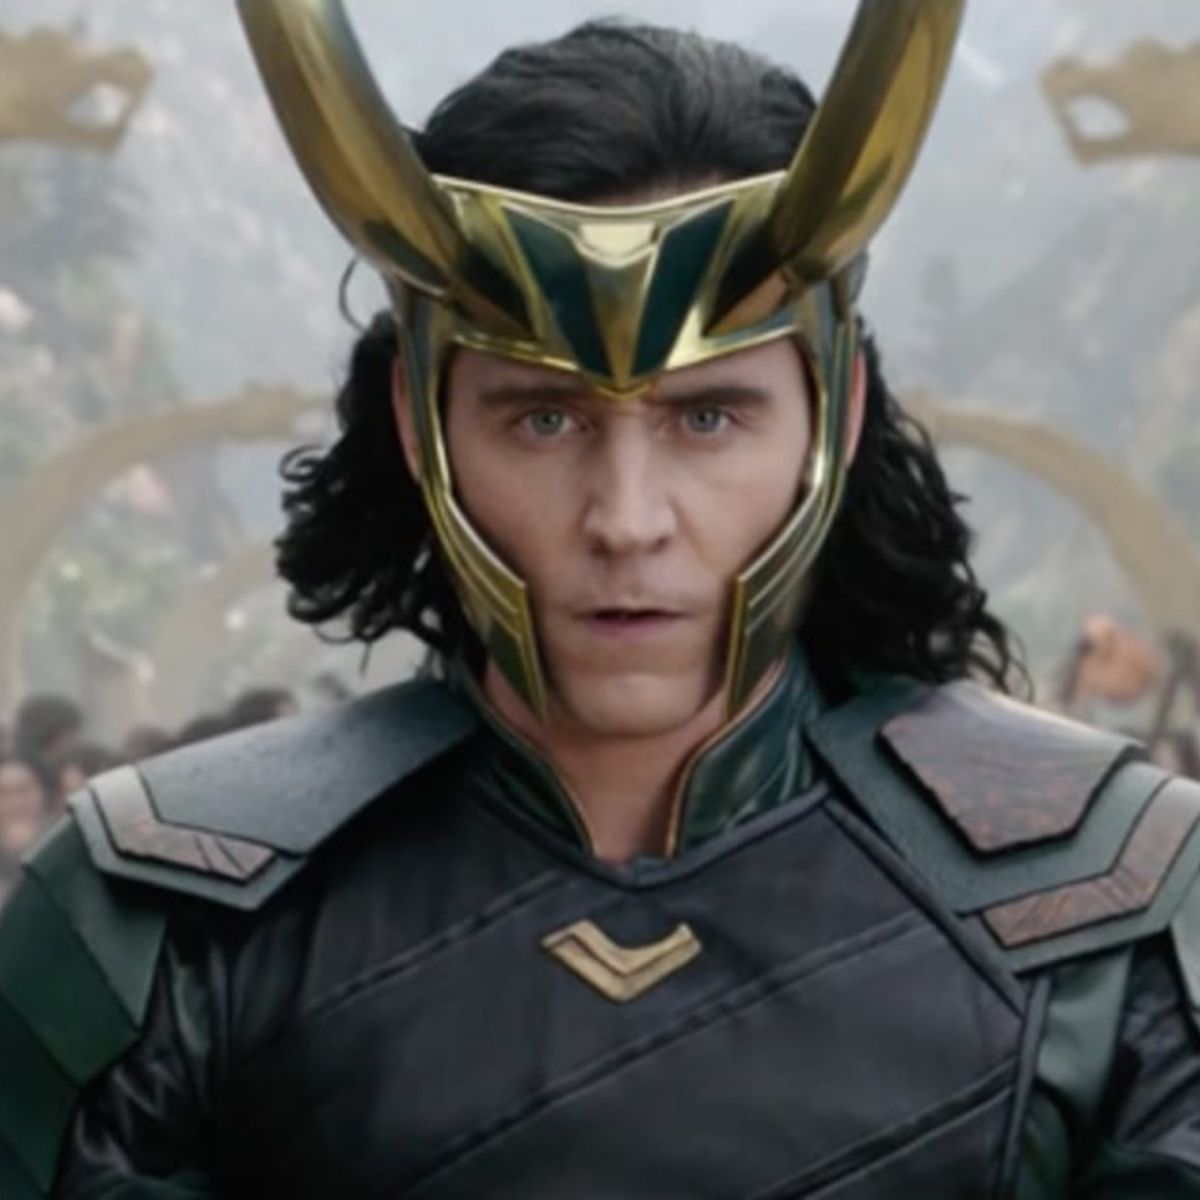 Marvel Developing MCU TV Shows For Loki, Scarlet Witch And More